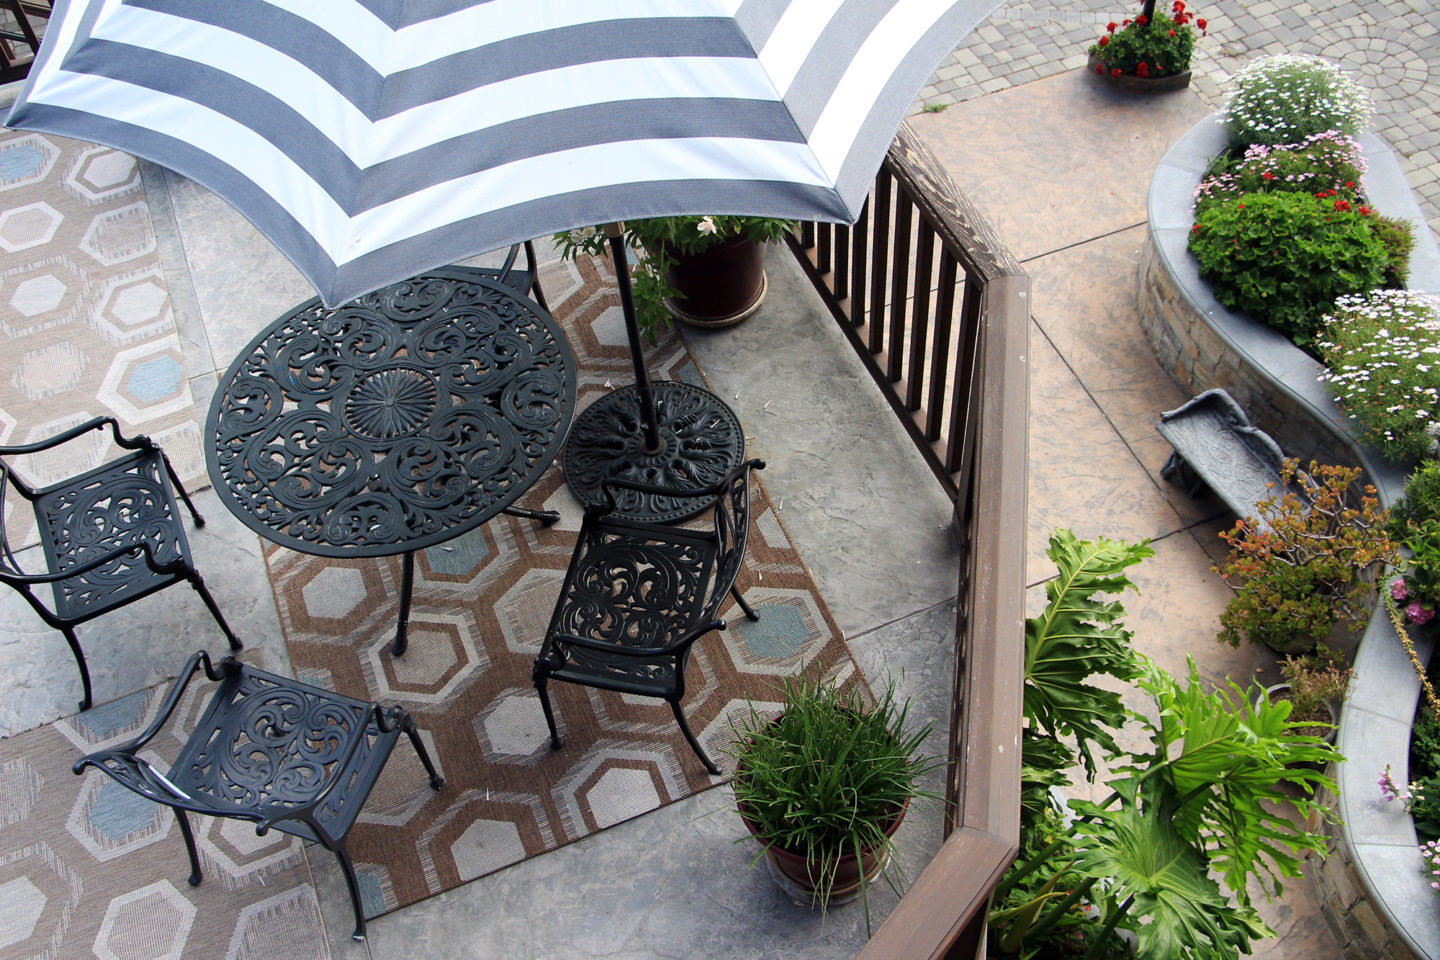 One of the patios at the Coachman's Inn